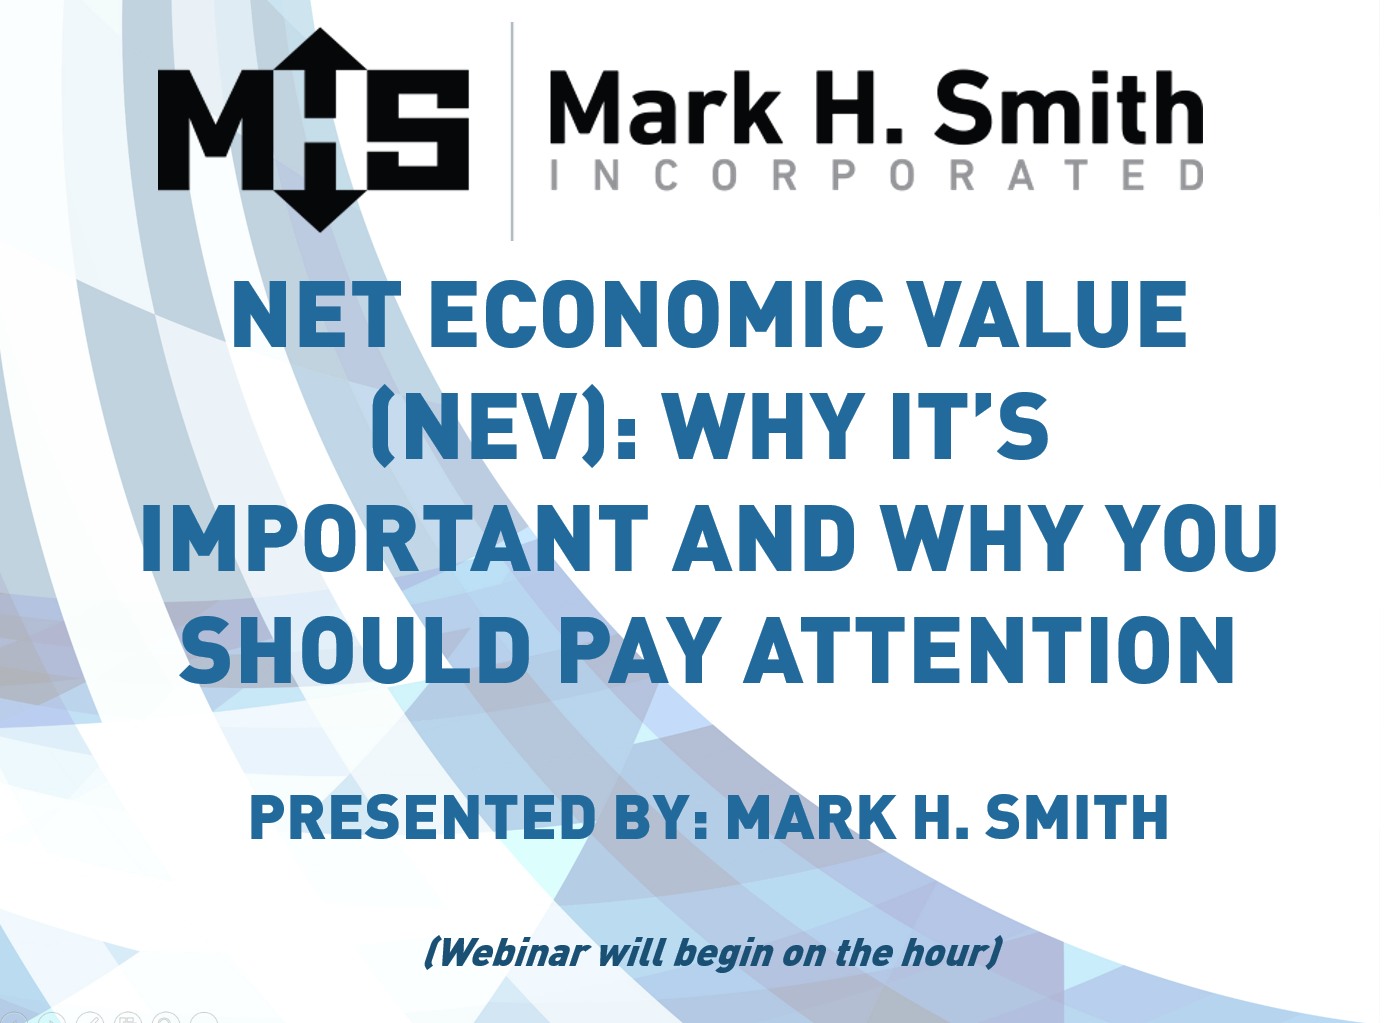 Why Net Economic Value (NEV) is Important and Why You Should Pay Attention